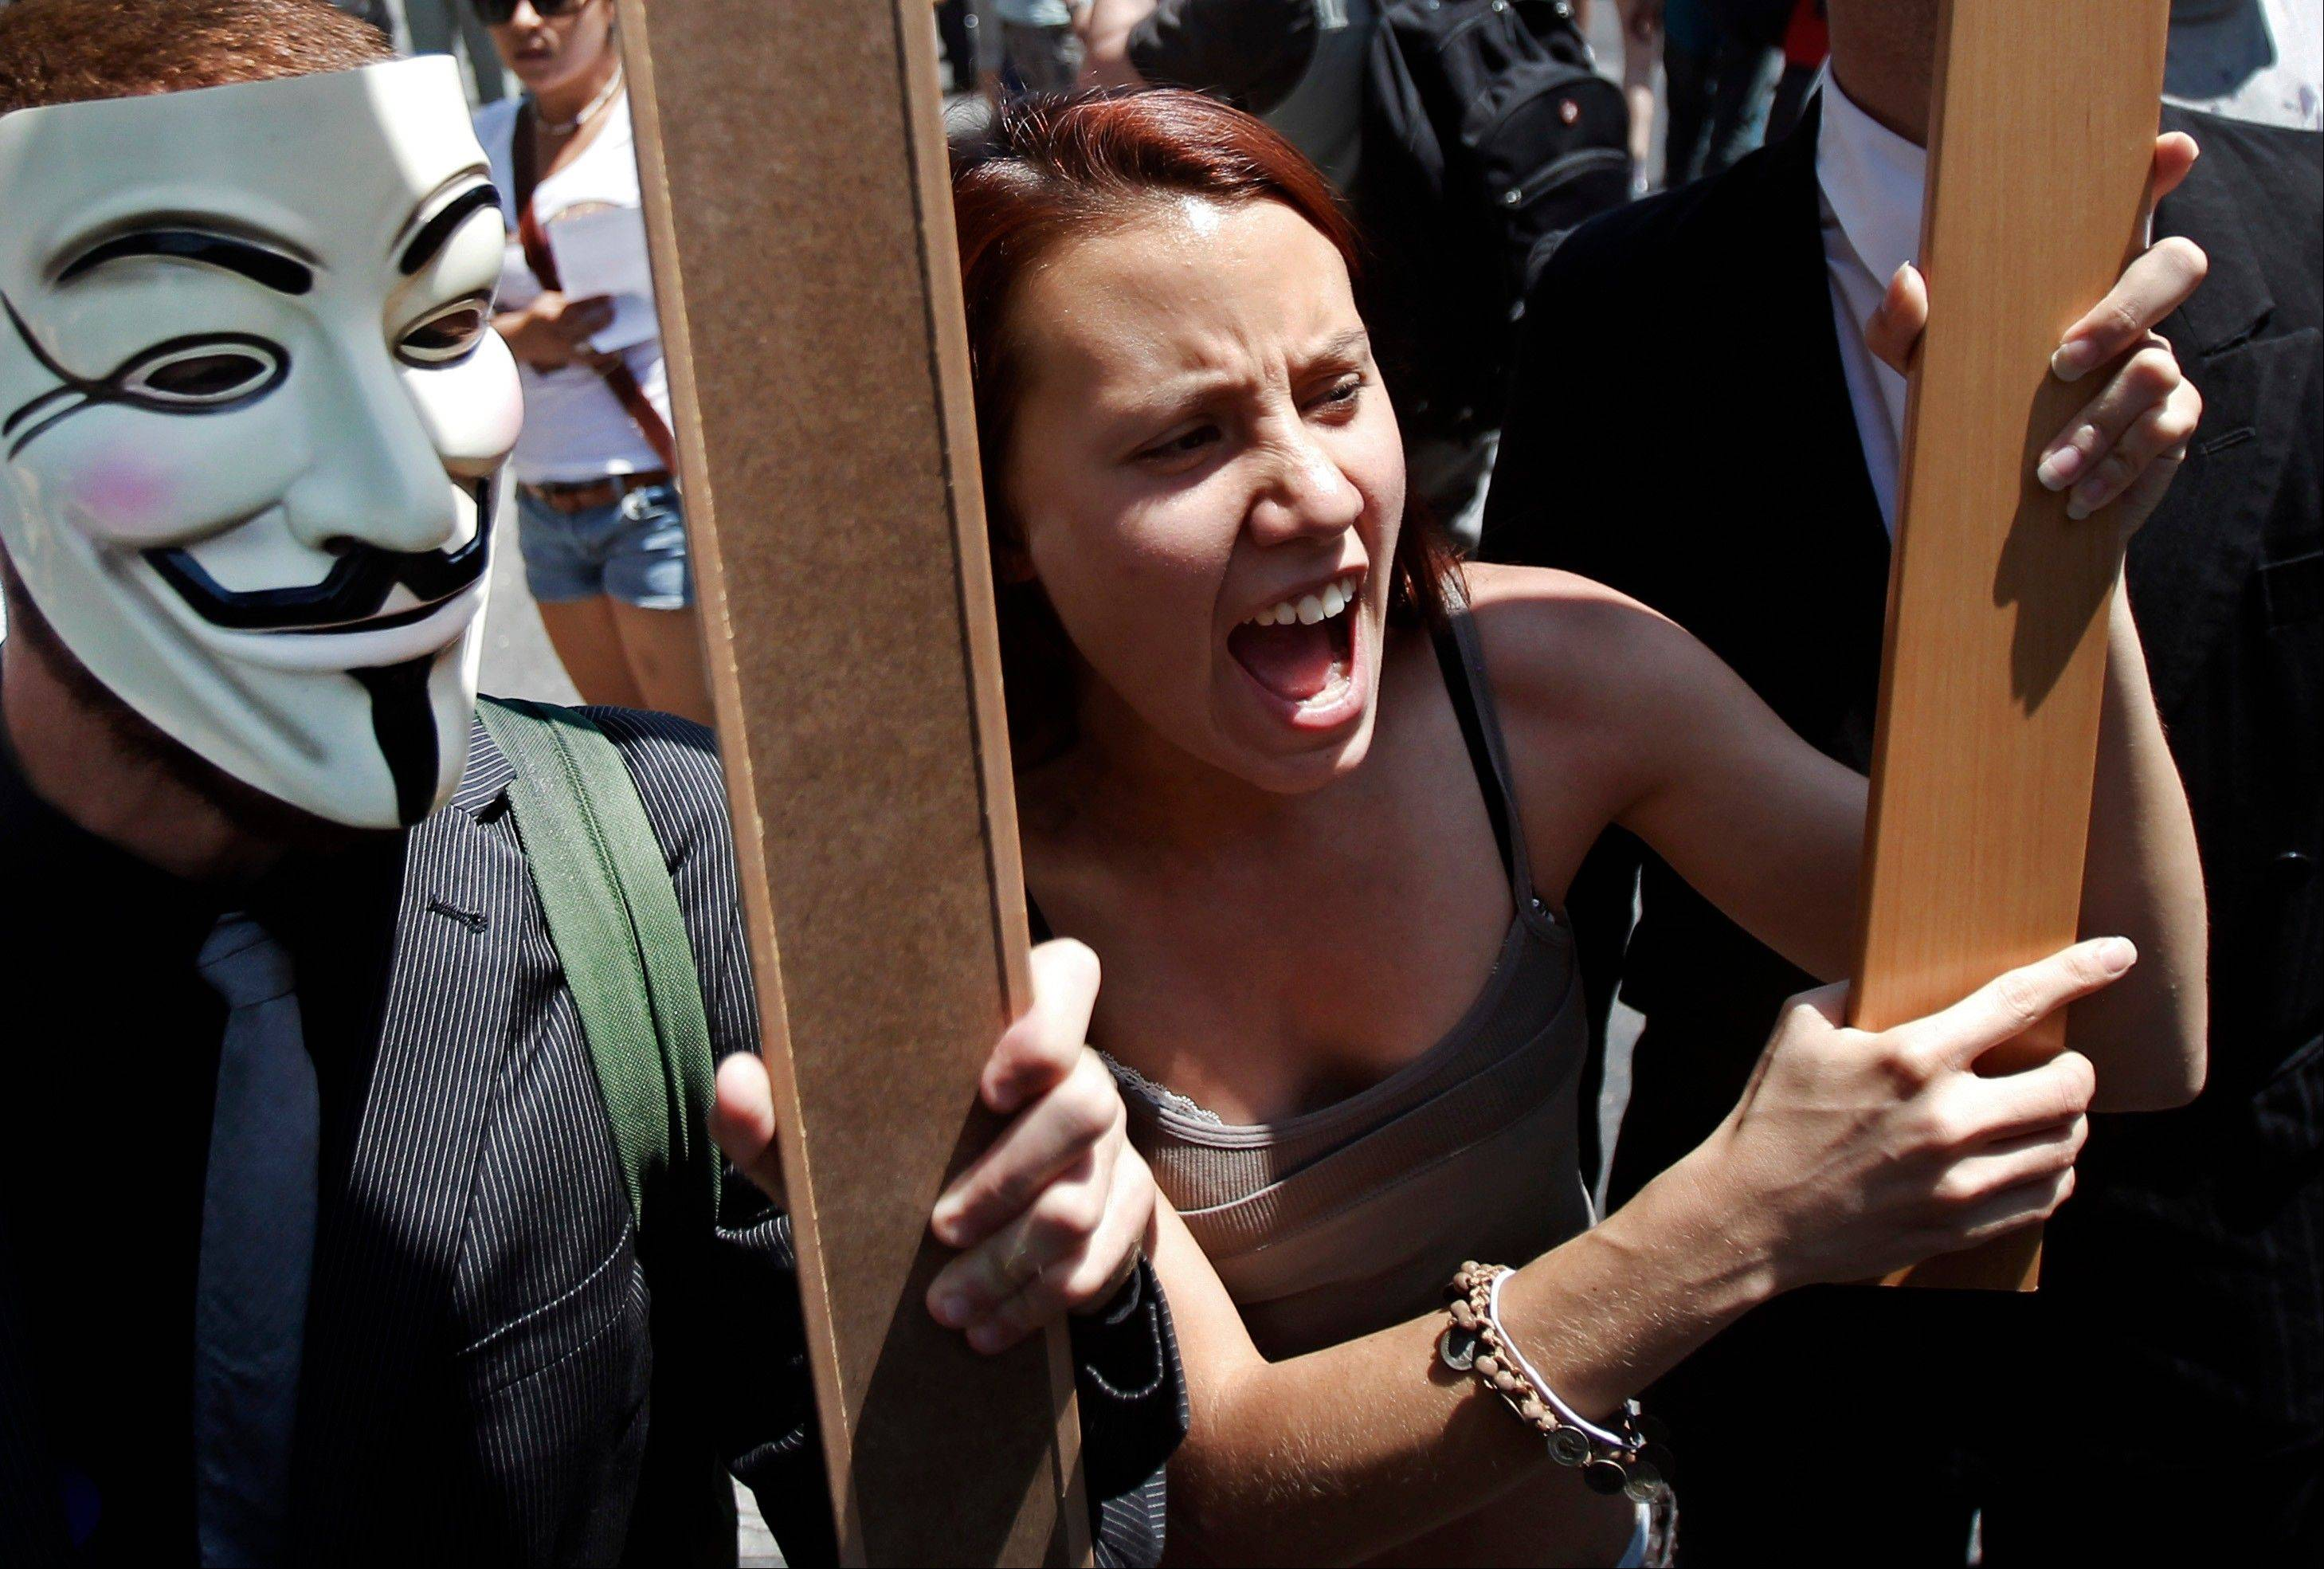 Protesters shout slogans to demonstrate against the country�s near 25 percent unemployment rate and stinging austerity measures introduced by the government, in Madrid, Spain.